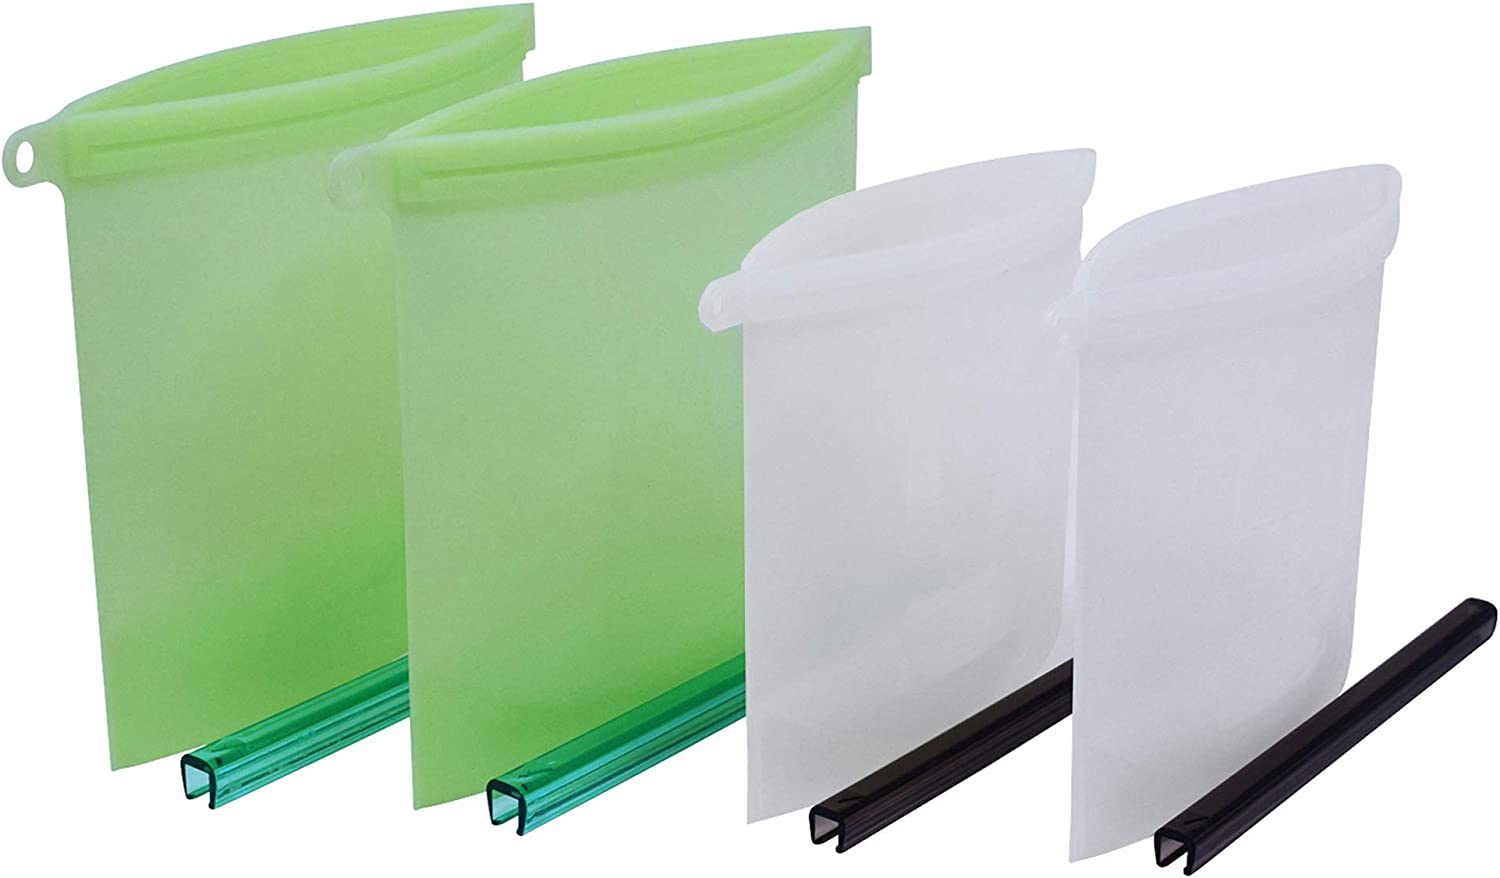 Exultimate Leak proof Silicone Reusable Food Bag Reusable Airtight Bags Dishwasher Safe for Everyday Use, Set of 4